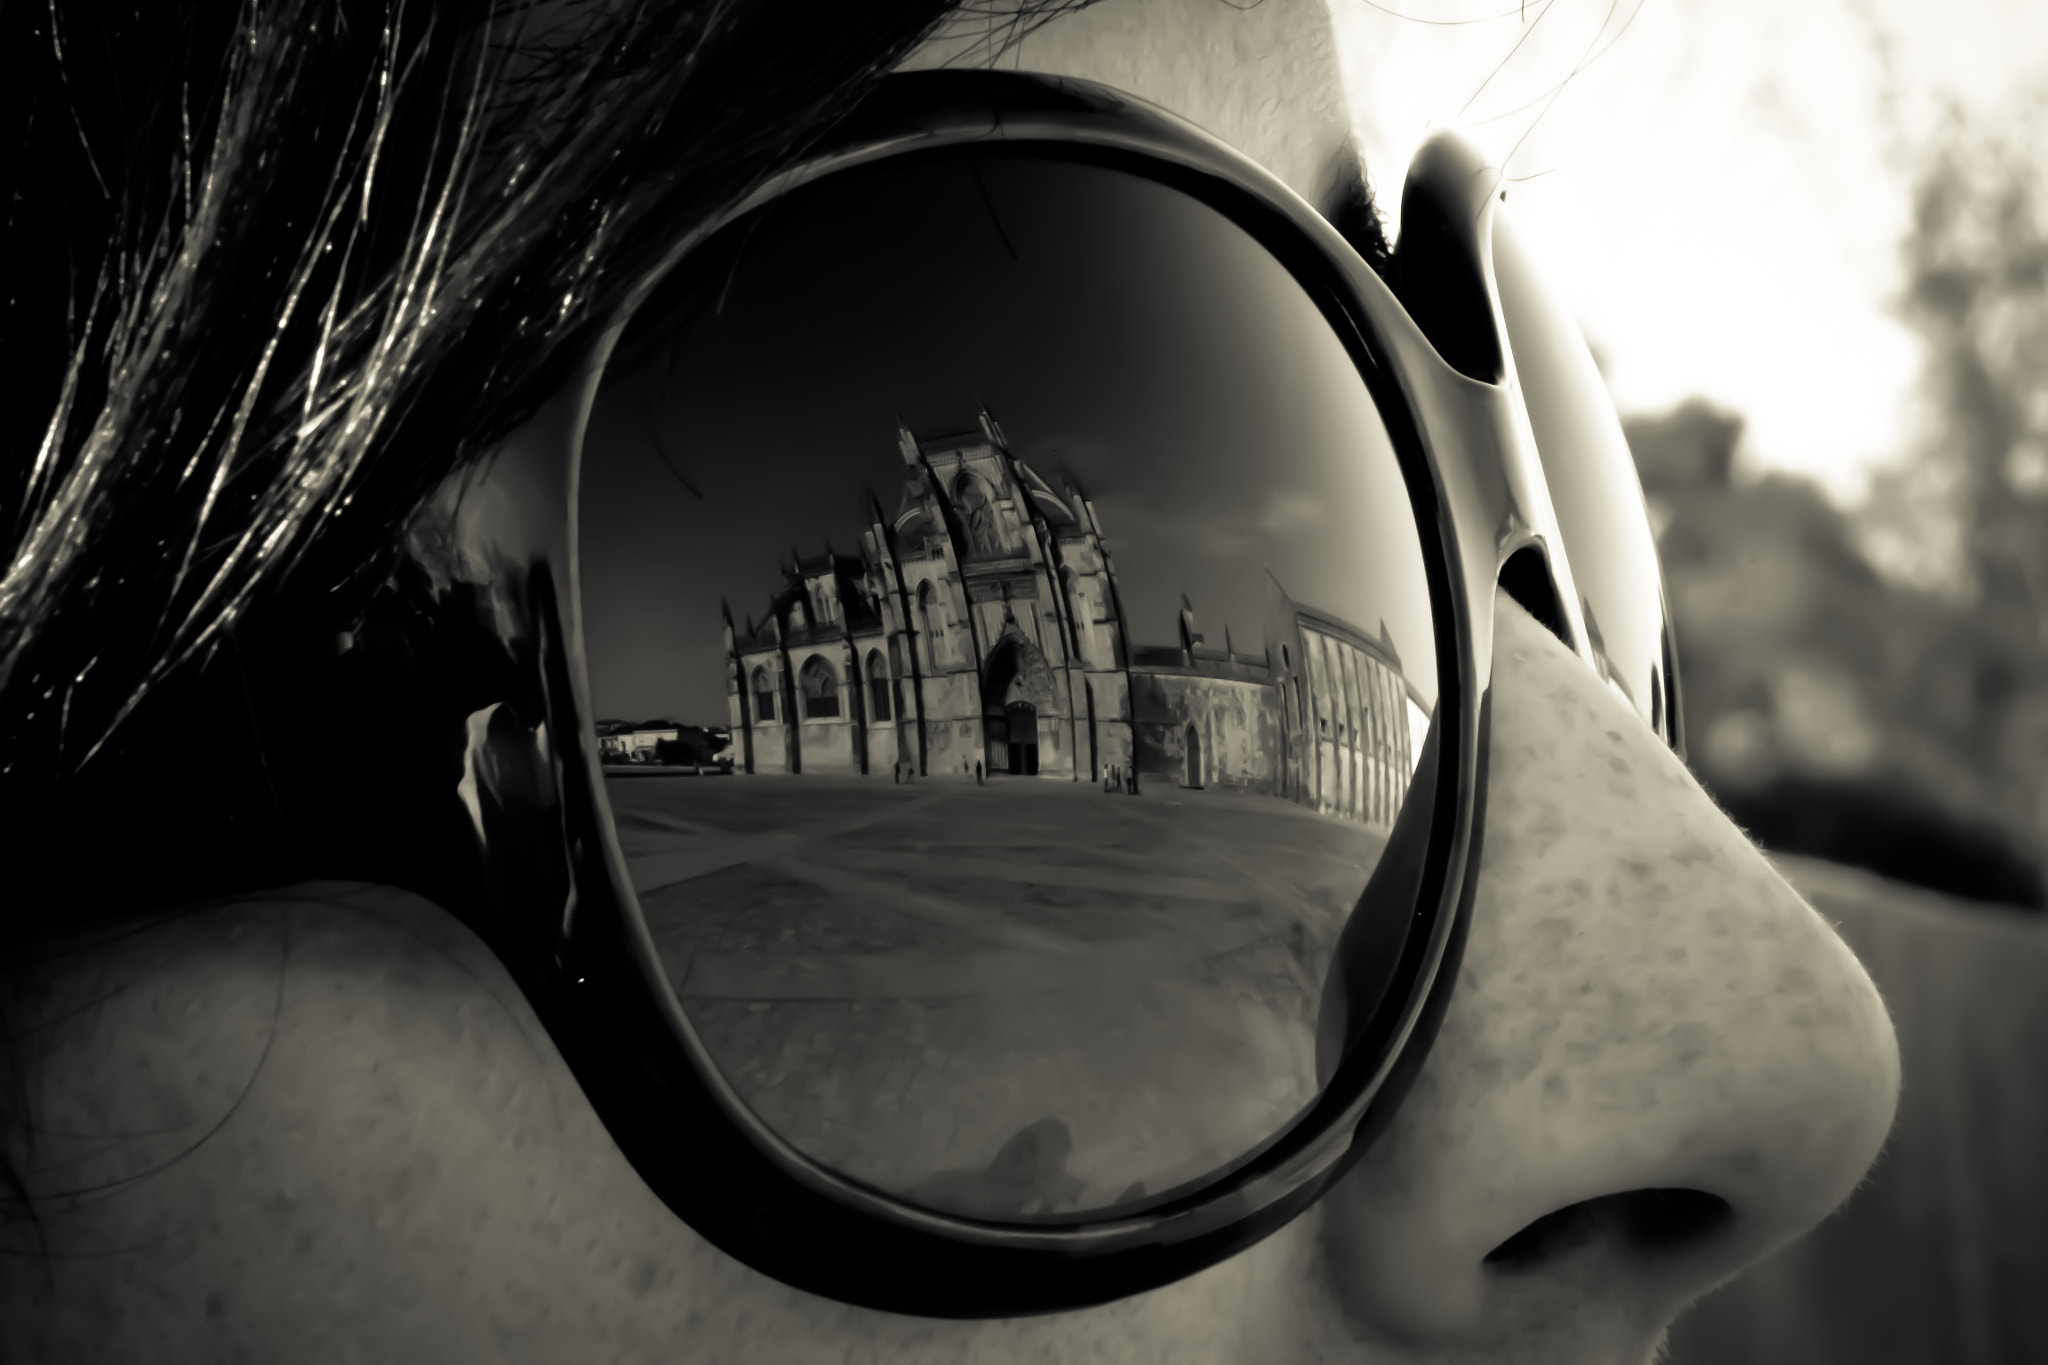 Photograph Reflections in her glasses by Pedro Thomaz on 500px